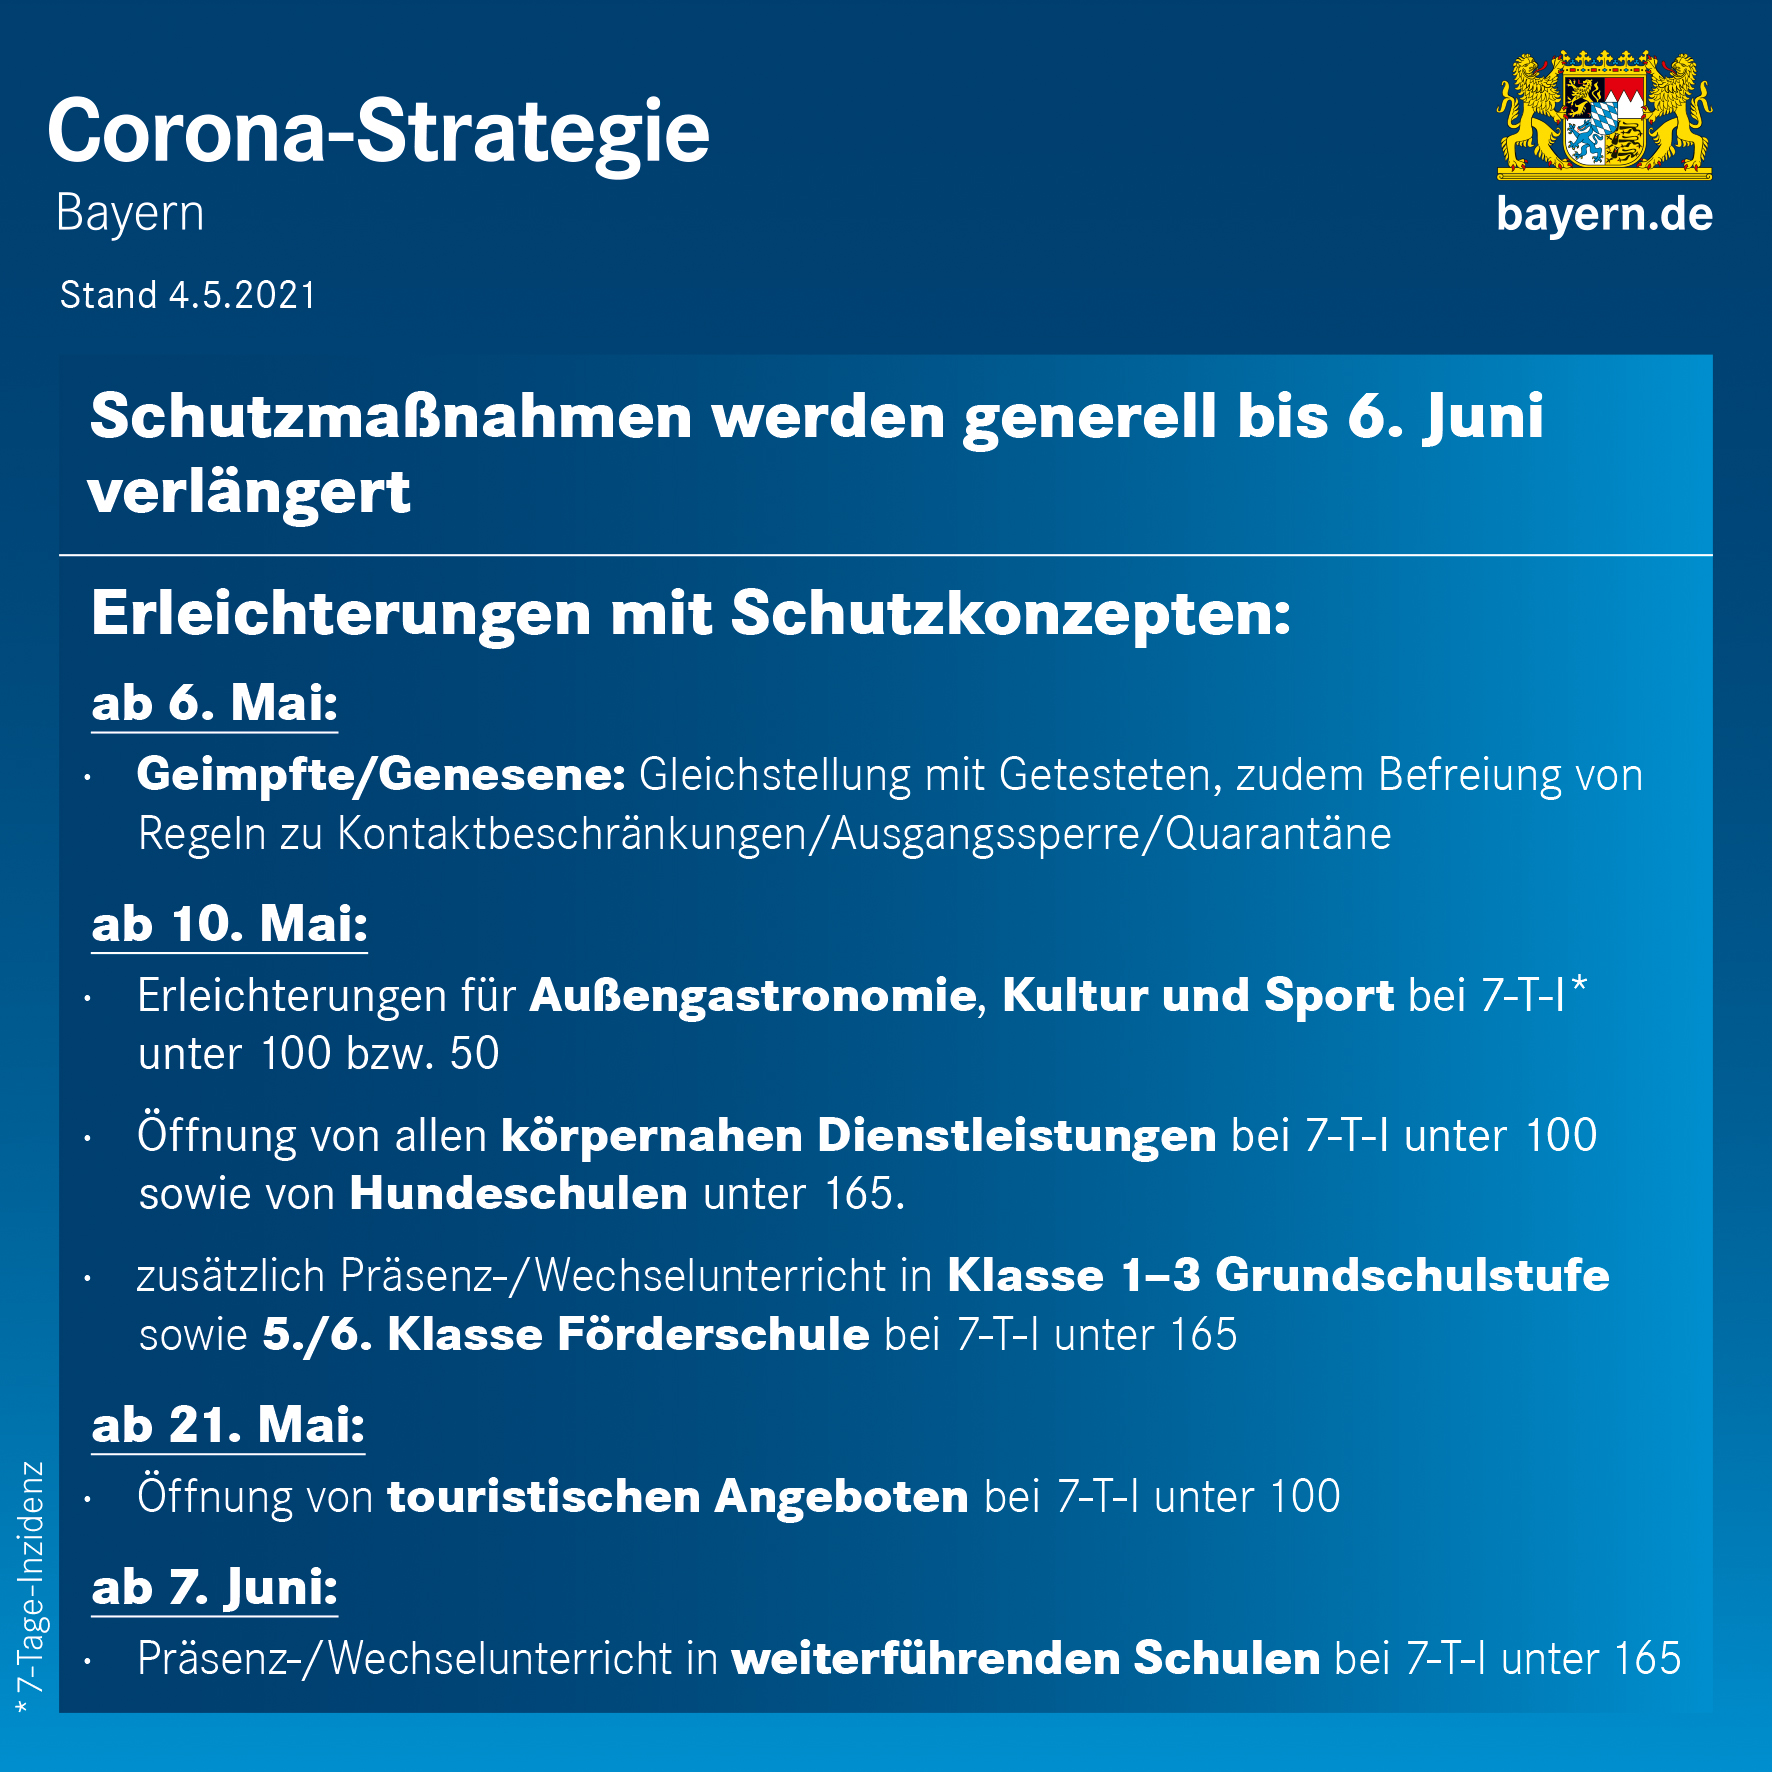 Corona-Strategie (Stand: 4. Mai 2021)